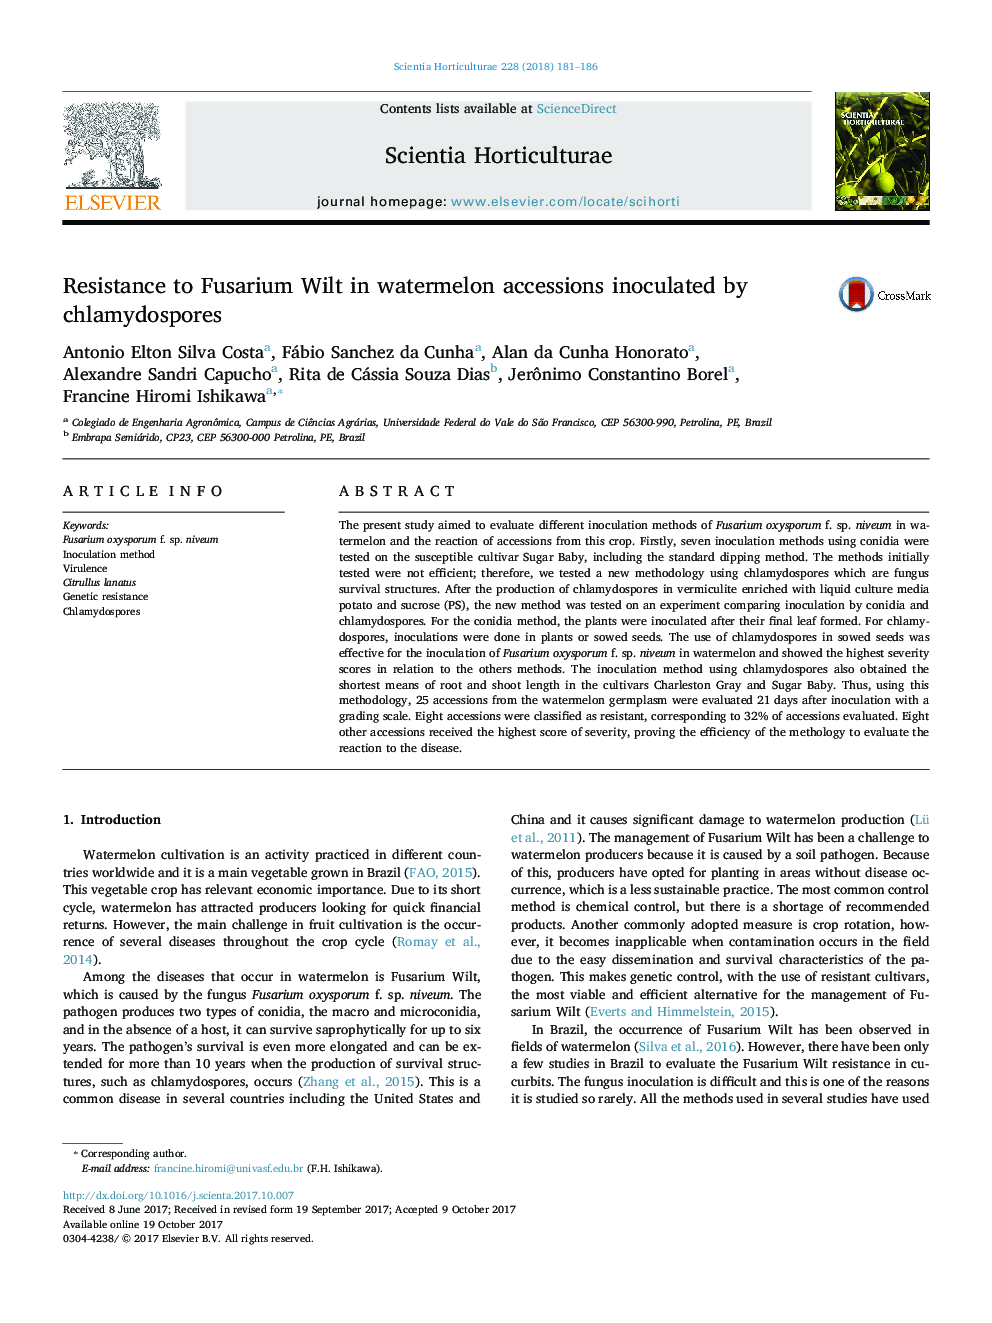 Resistance to Fusarium Wilt in watermelon accessions inoculated by chlamydospores